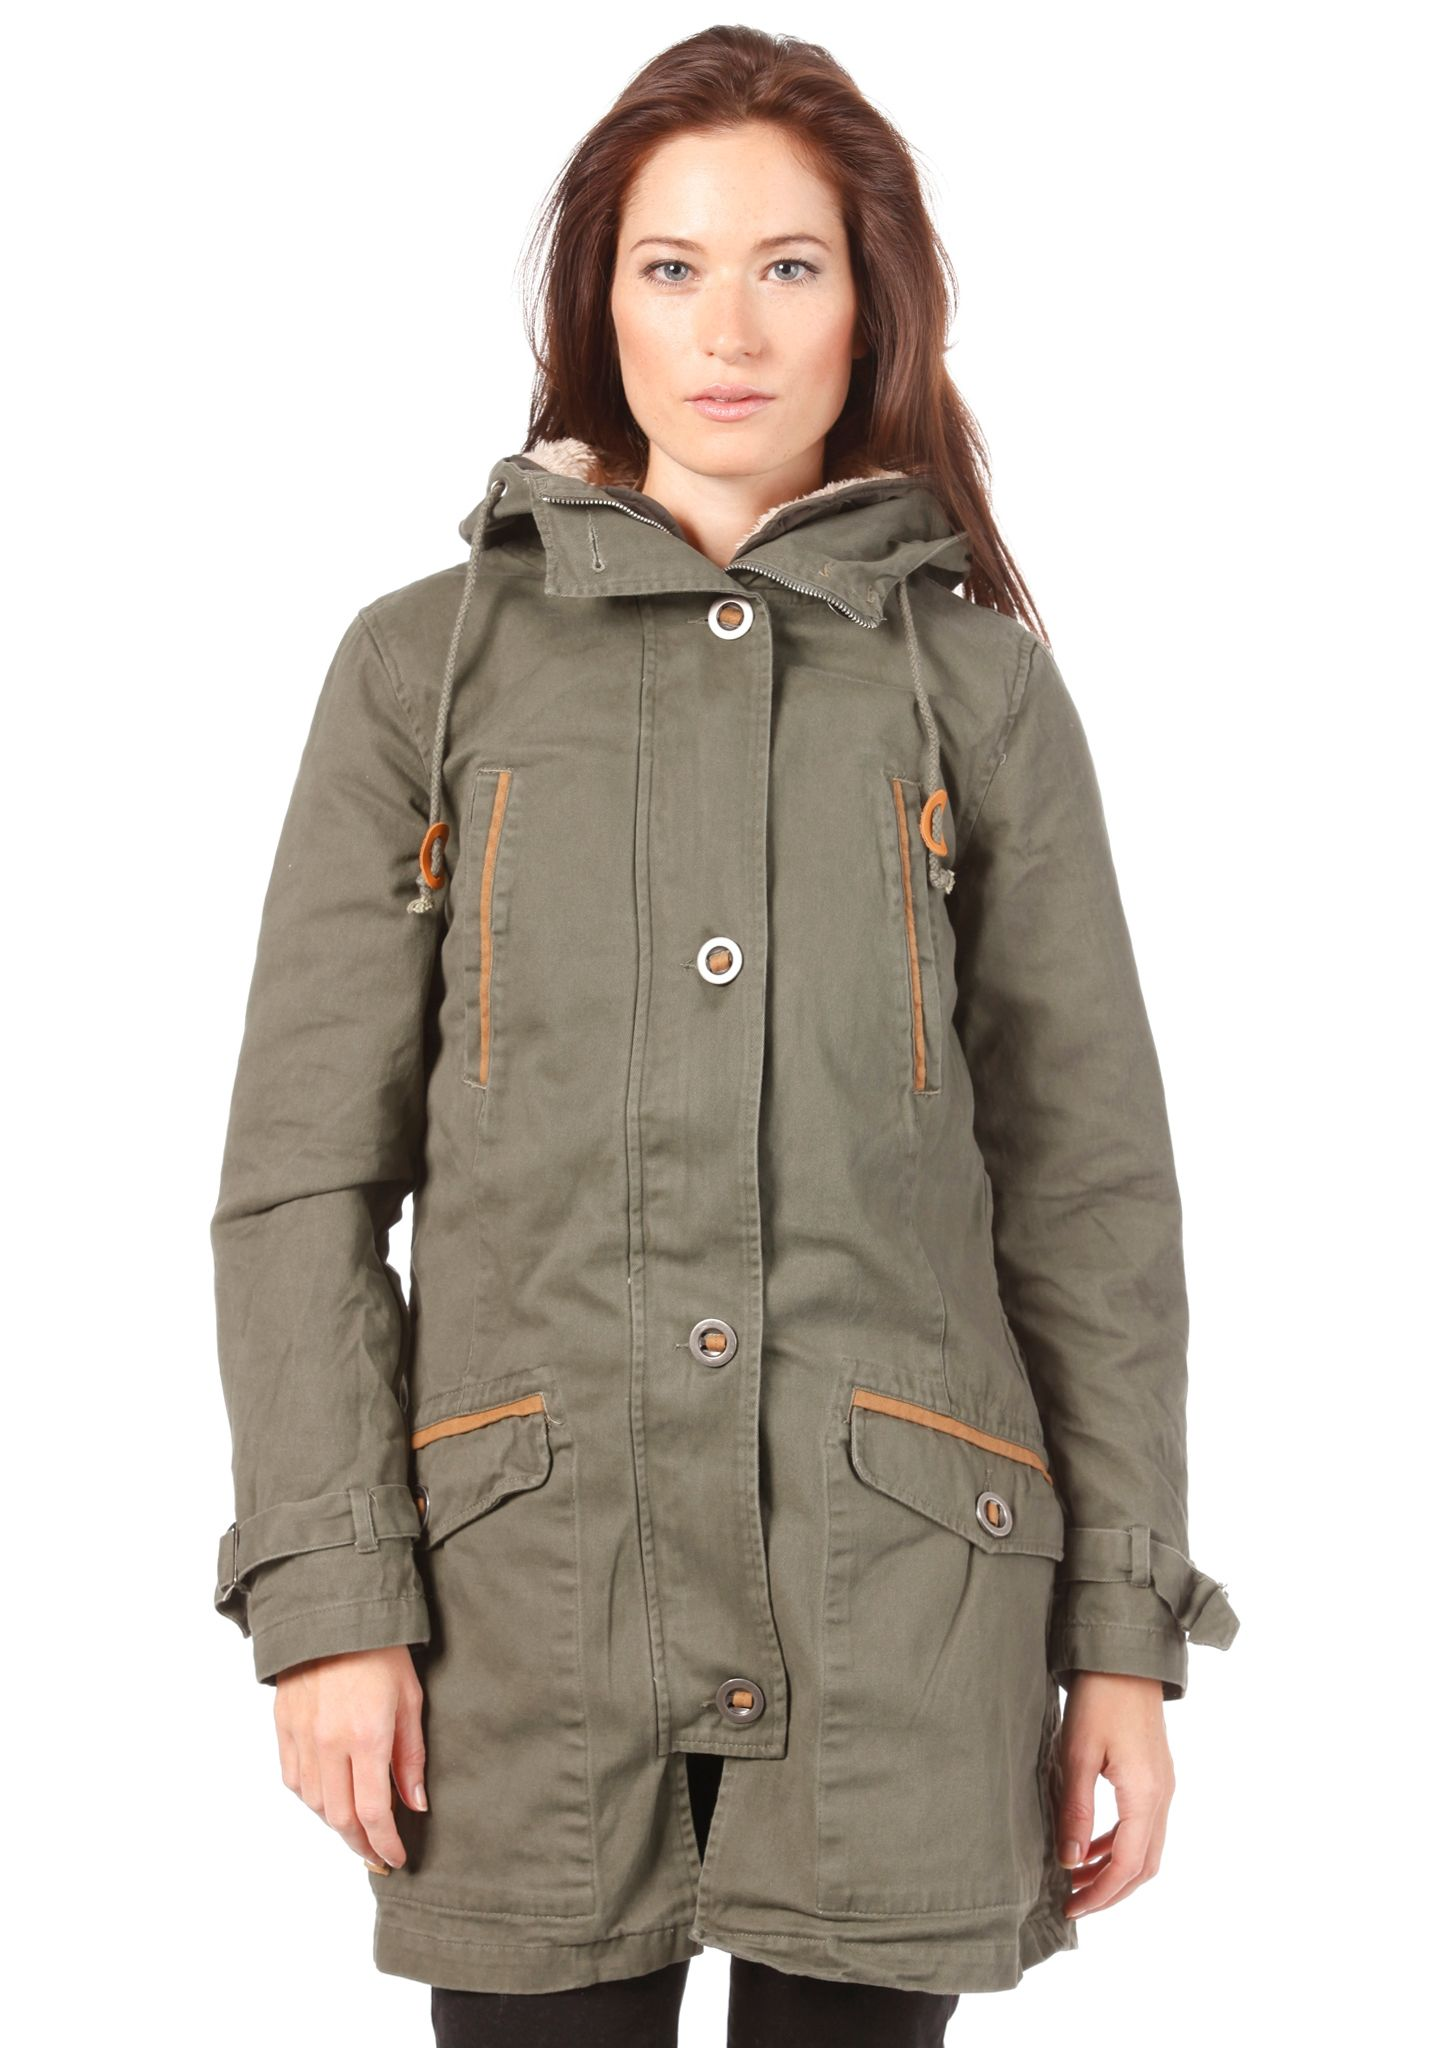 Vest Giacca Donna Verde Sherpa Planet amp; Parka Kain SITKA per wX0qxIAw